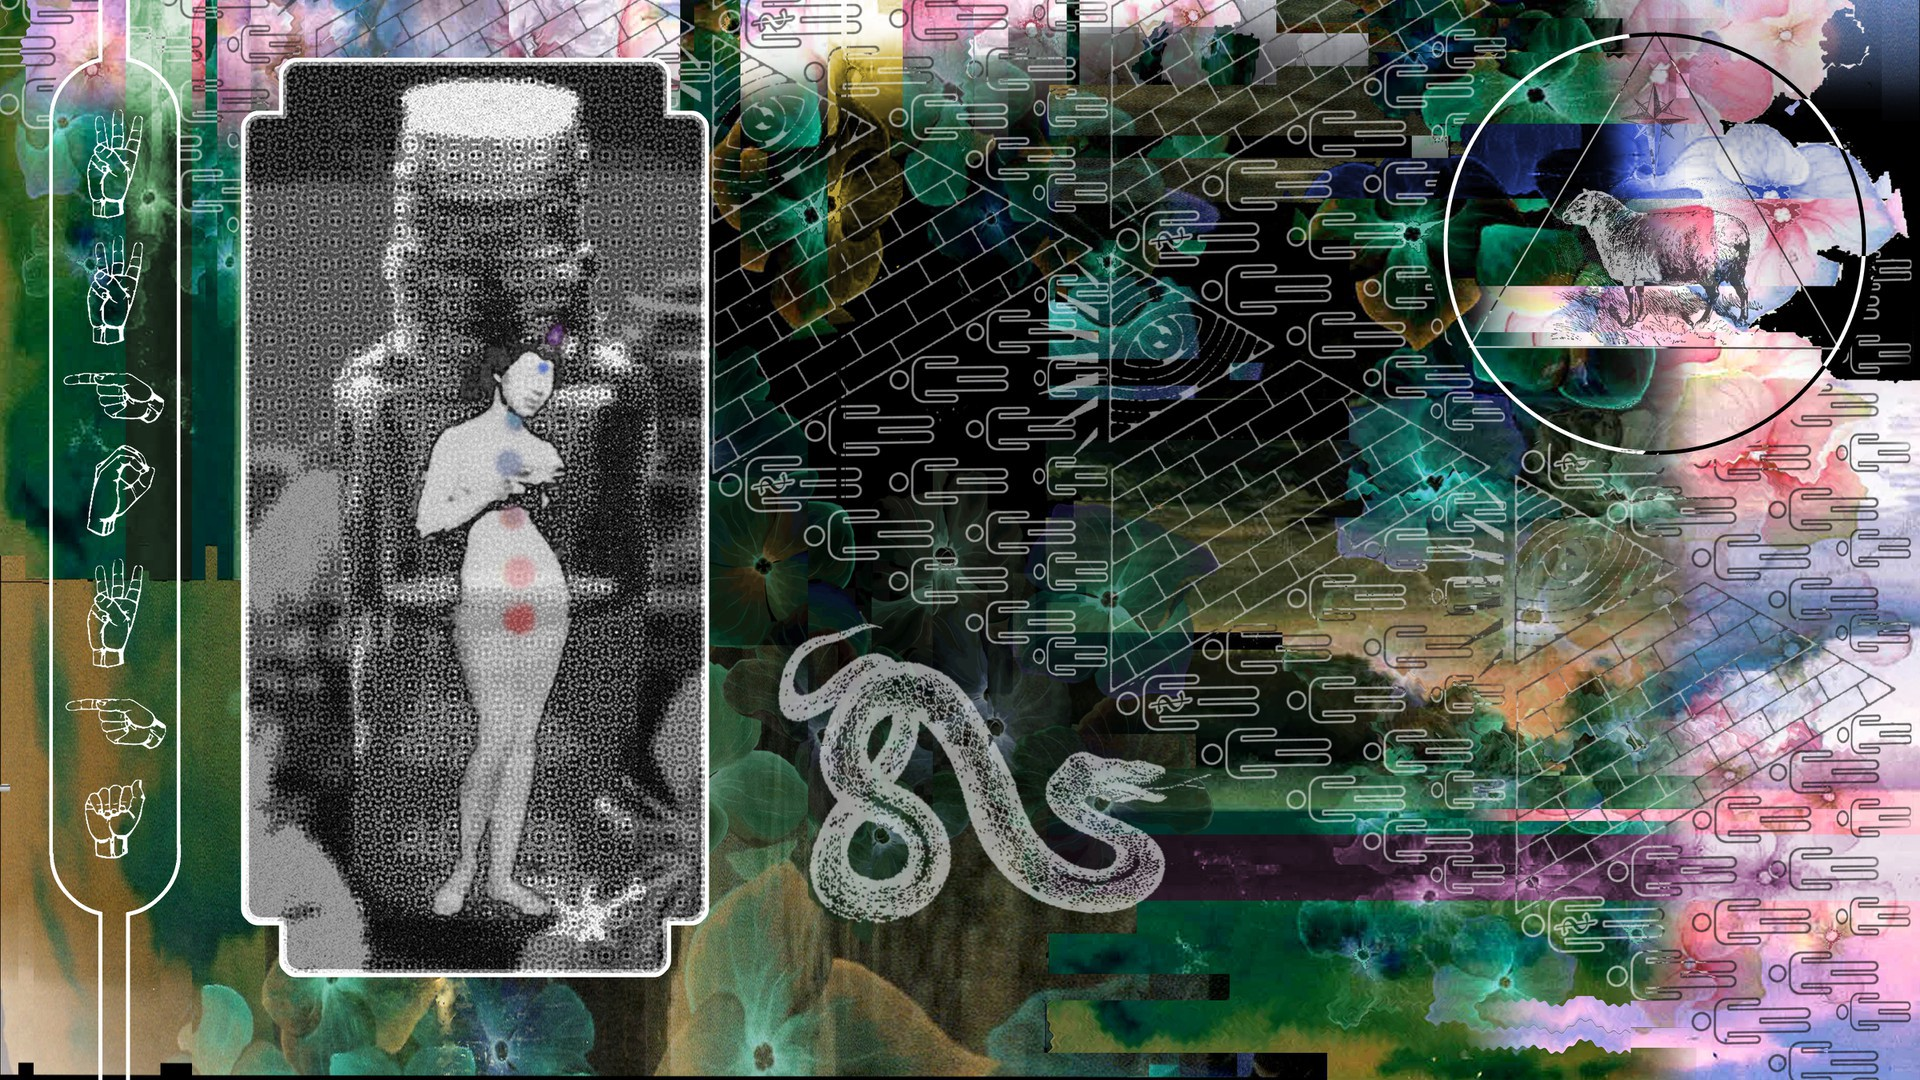 Collage of a snake, a sheep in a triangle, + a vintage photo of a nude person standing in front of an old bottle of medicine